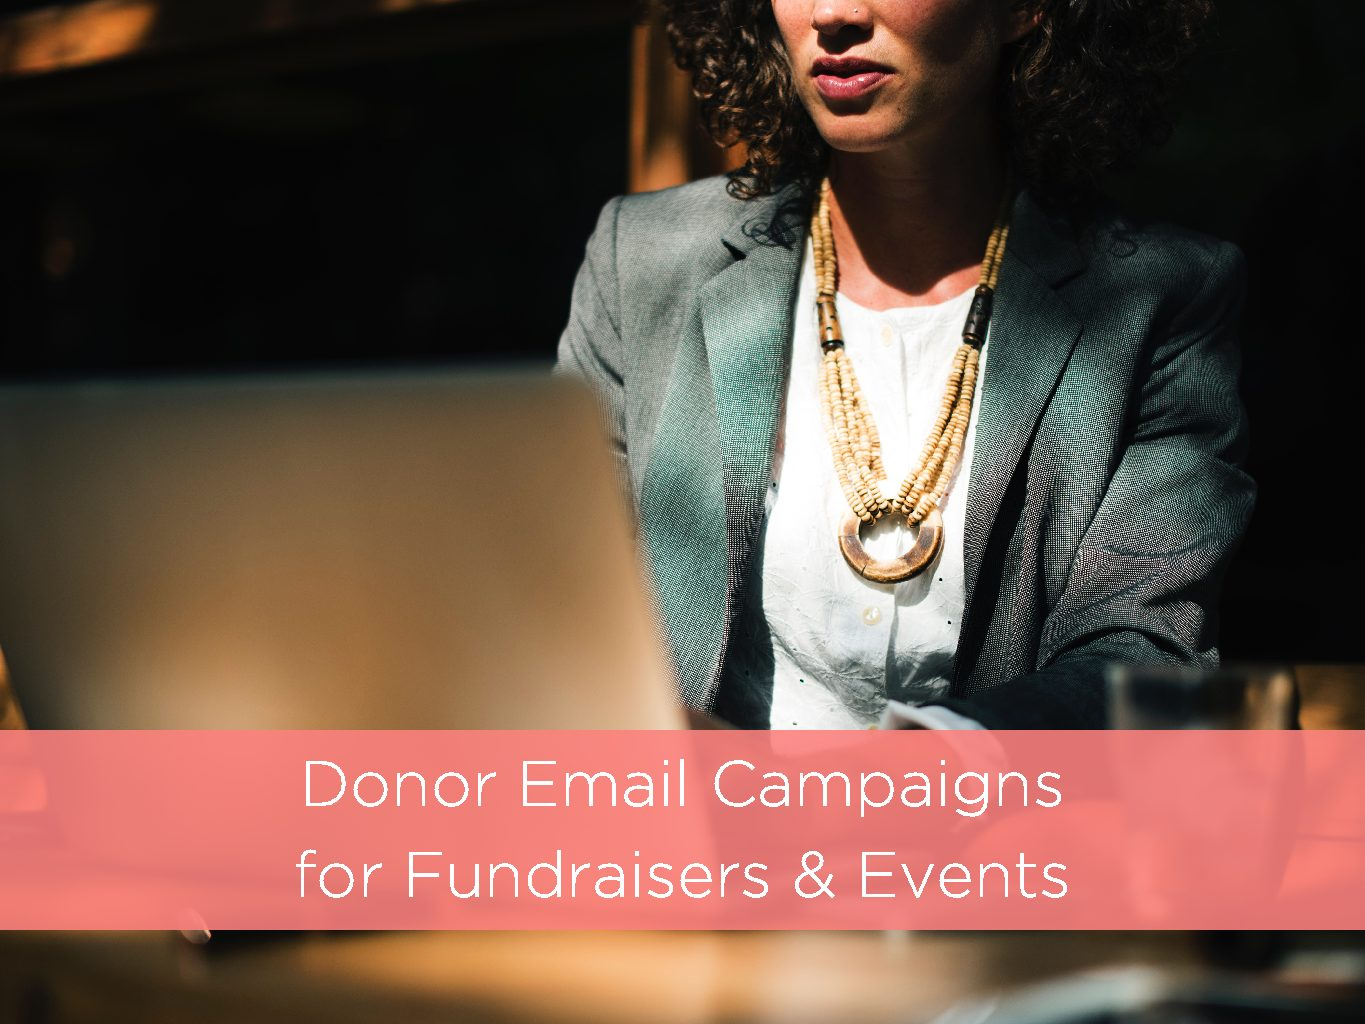 Donor Email Campaigns for Fundraisers & Events